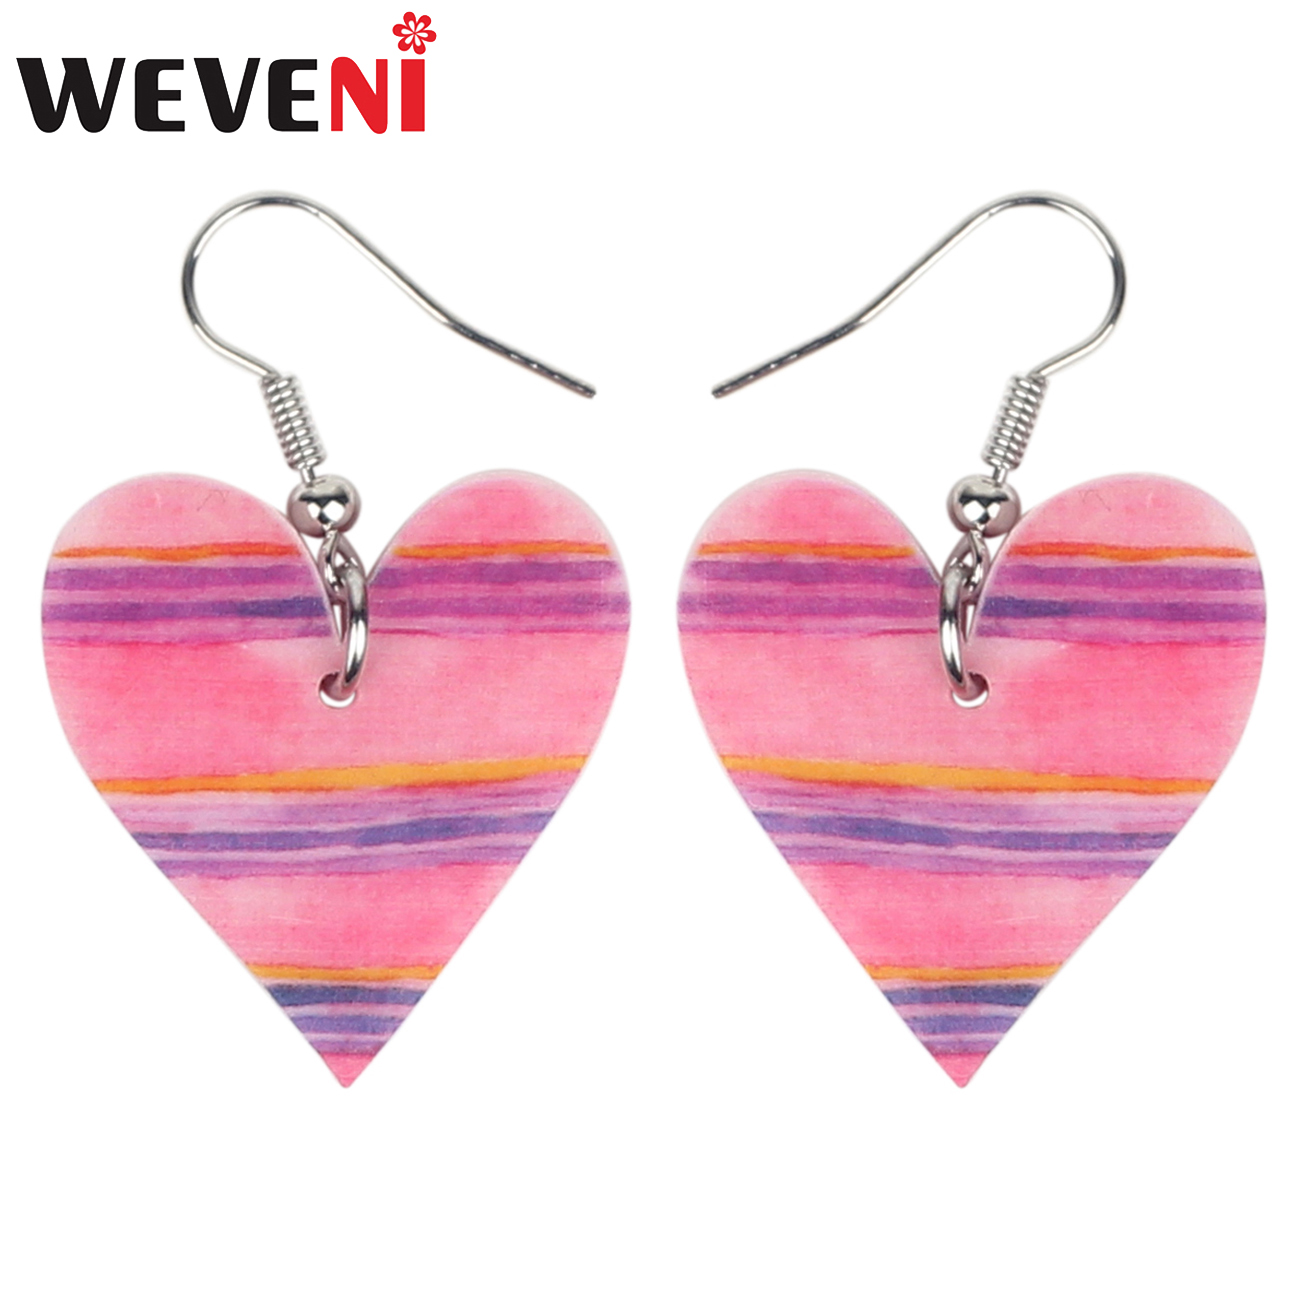 WEVENI Statament Acrylic Valentine's Day Pink Heart Earrings Drop Dangle Lovers Jewelry Gift For Women Girls Charms Brincos 2019